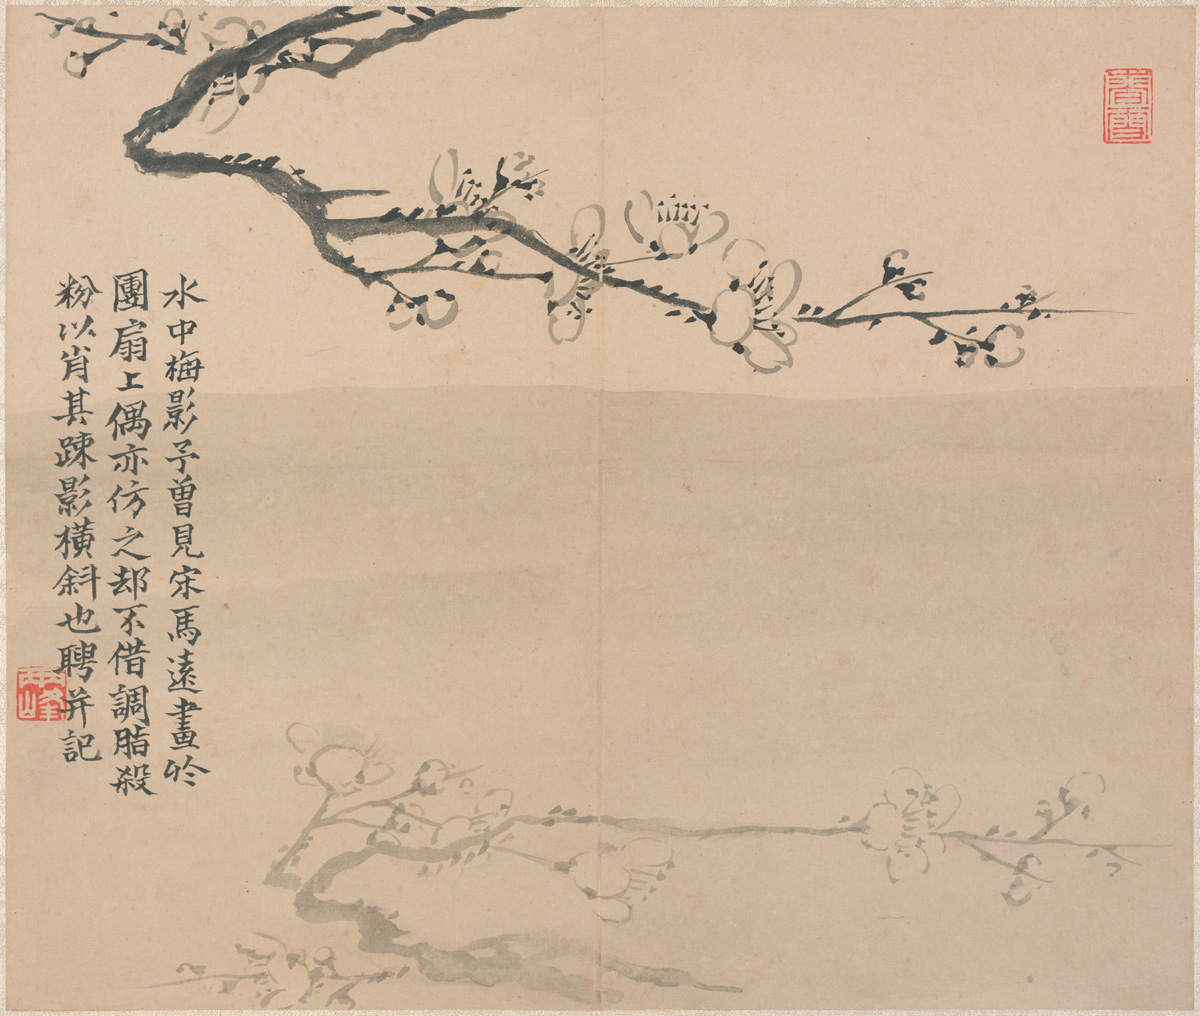 Luo Ping cherry blossoms